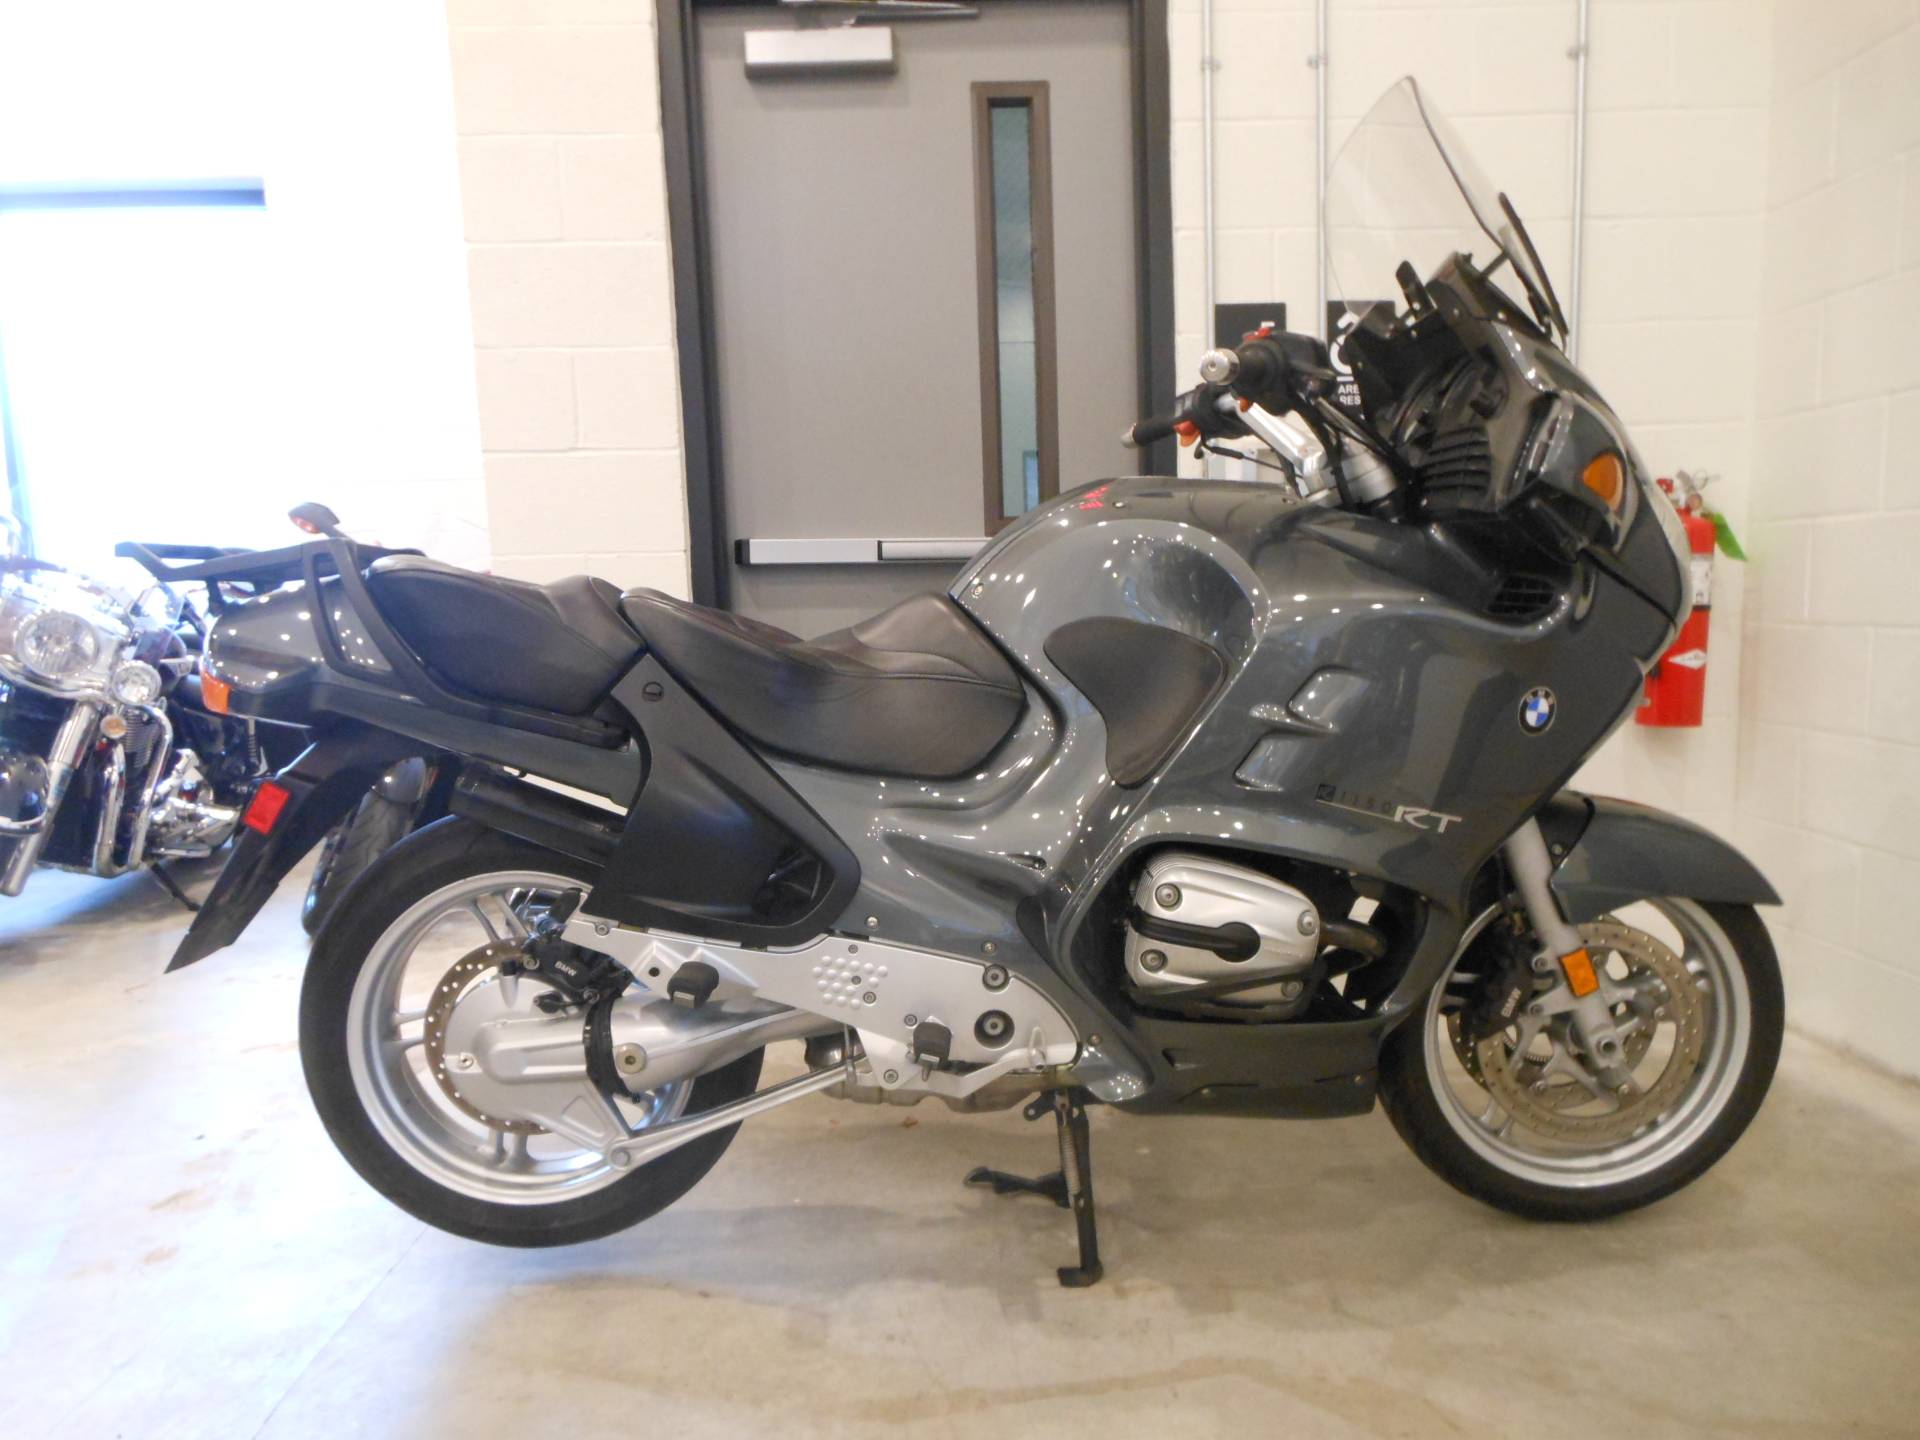 hight resolution of 2004 bmw r 1150 rt abs in port clinton pennsylvania photo 1